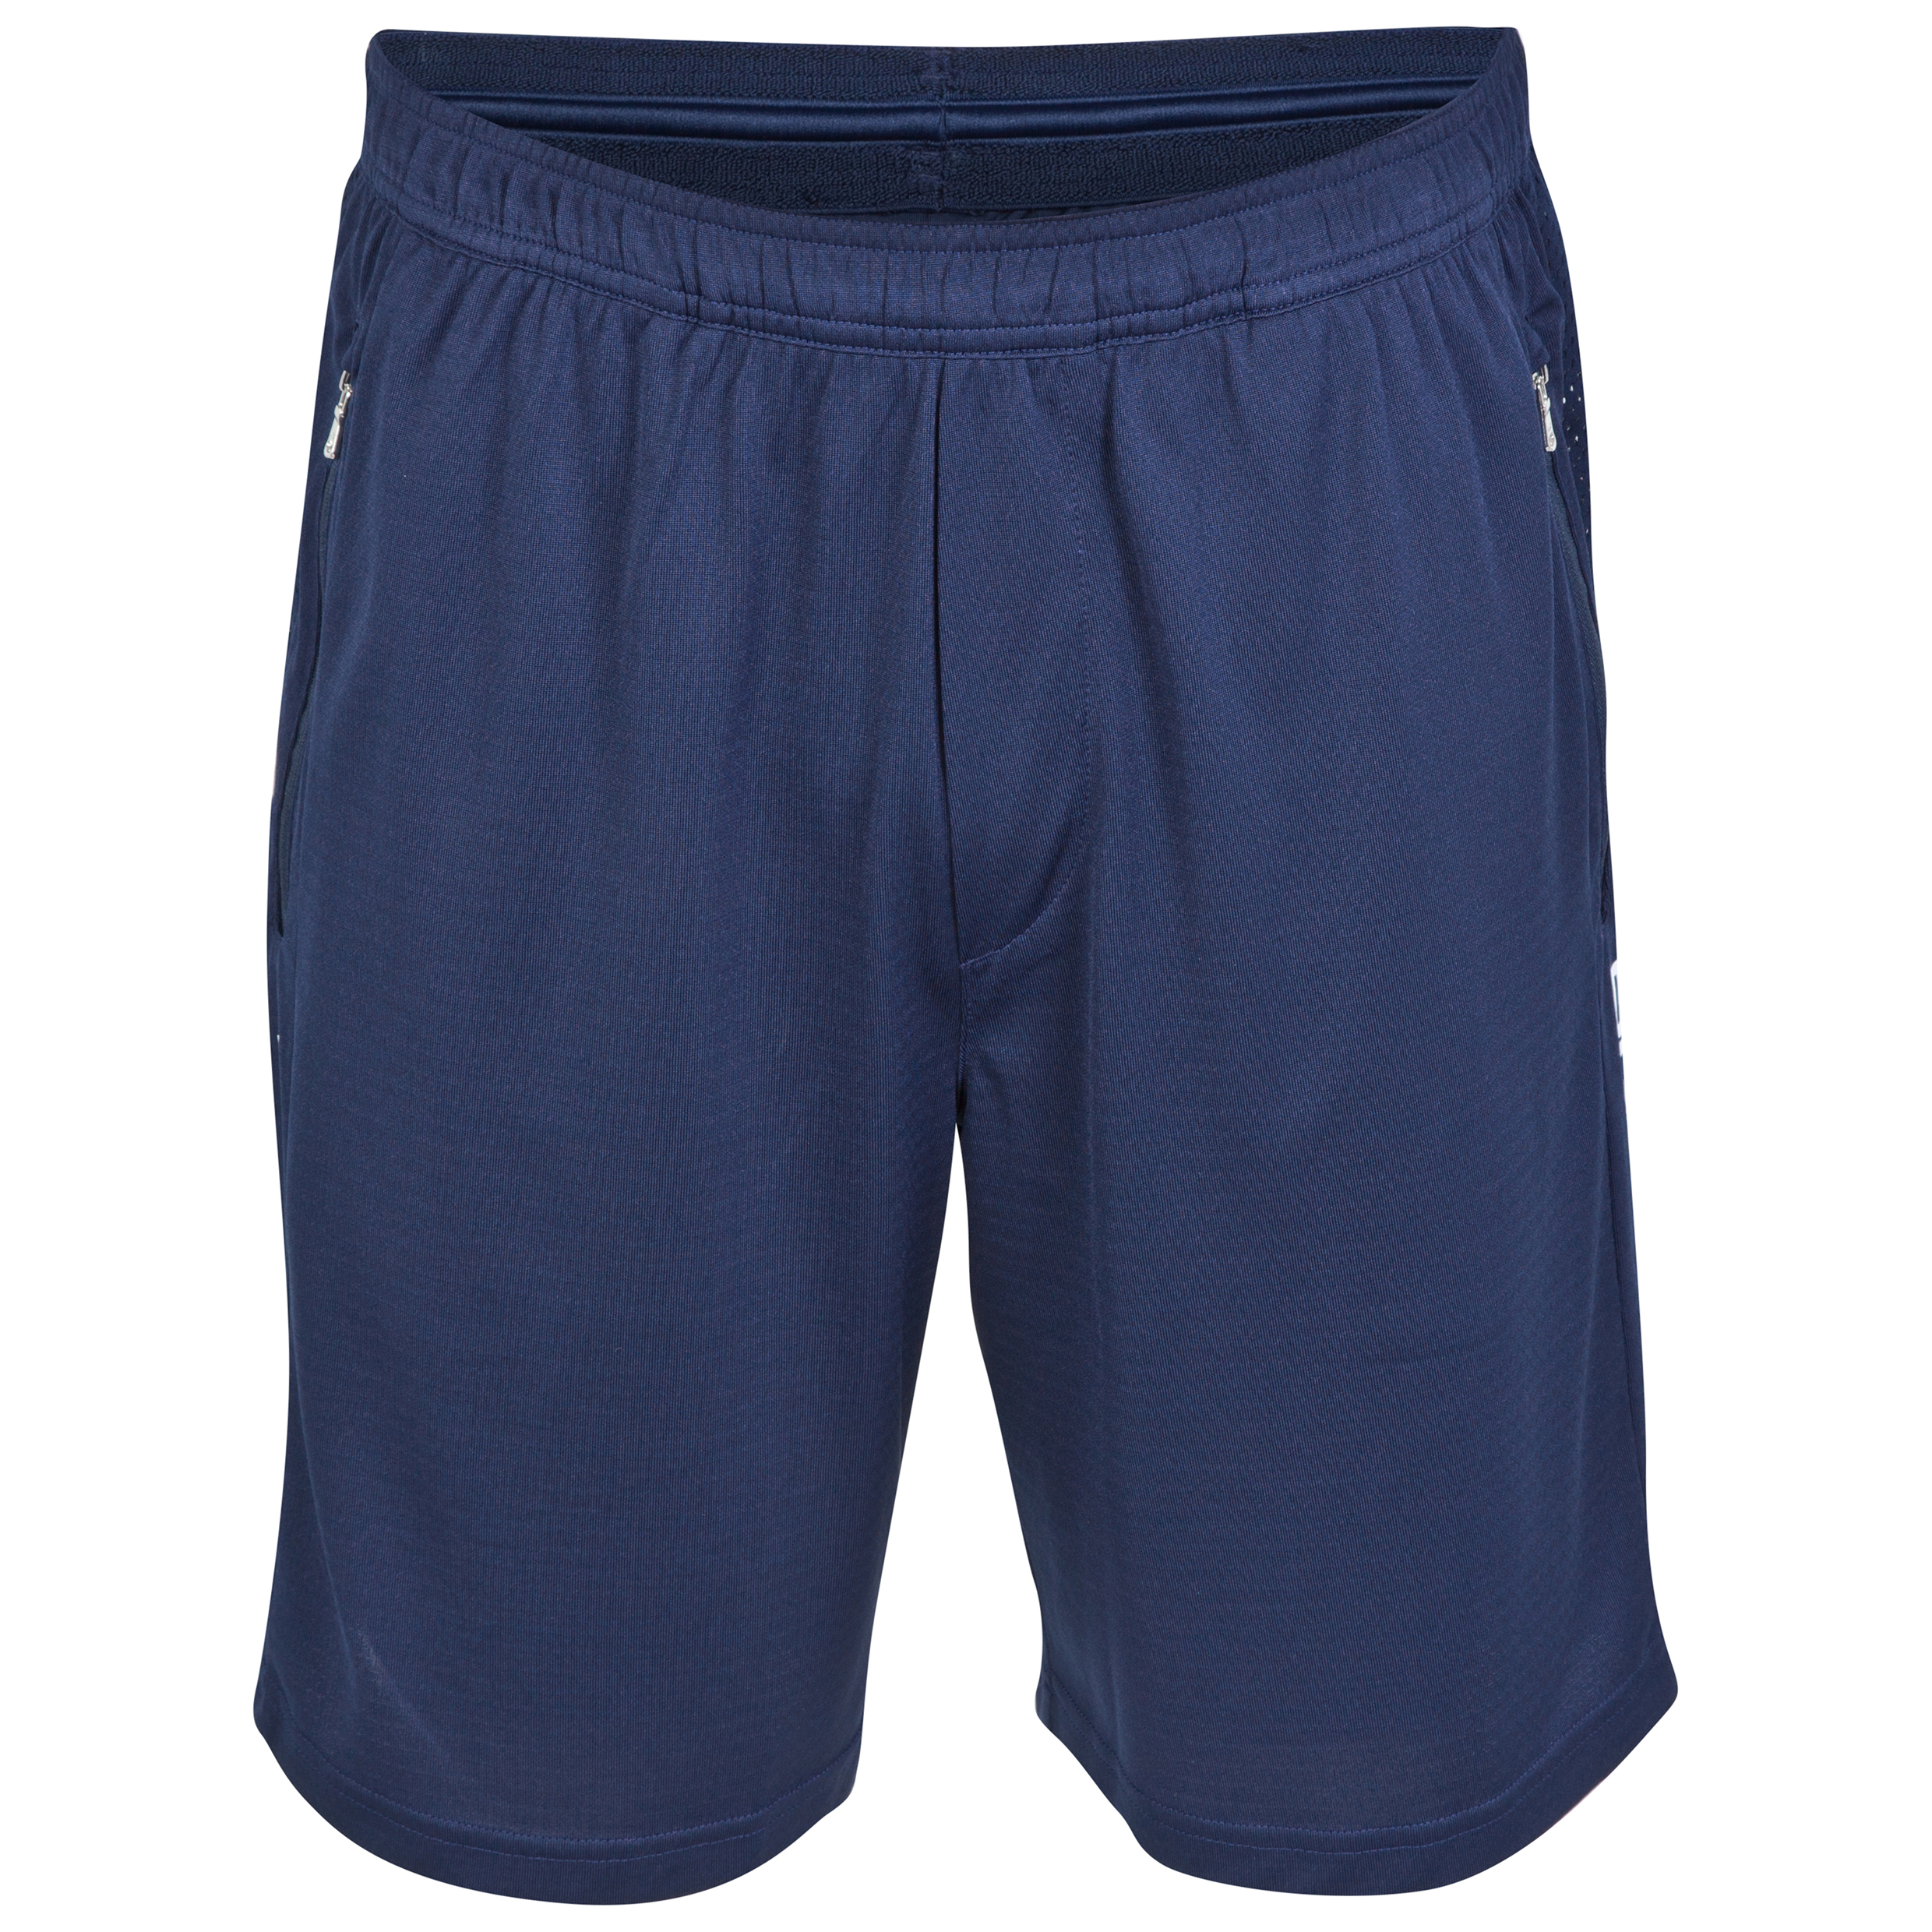 Wimbledon Polo Ralph Lauren Engineered Short - French Navy